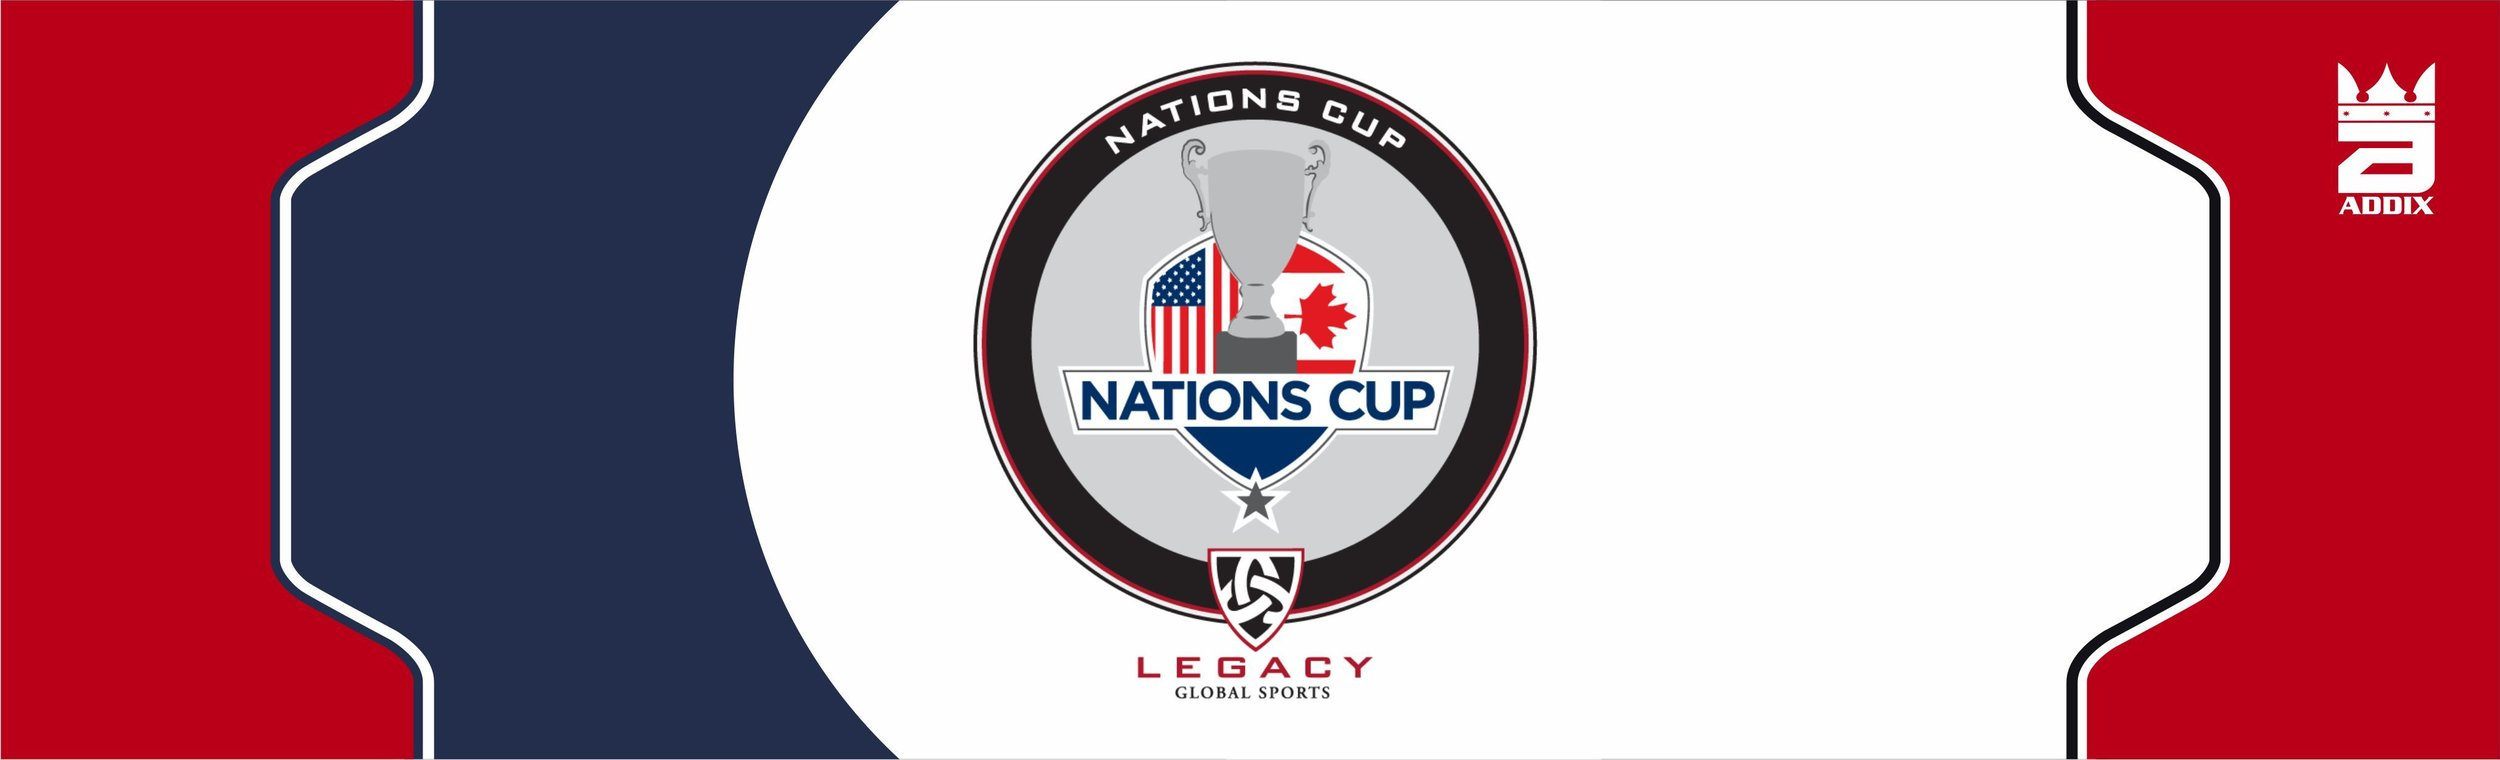 Nations Cup 2019 - Canada